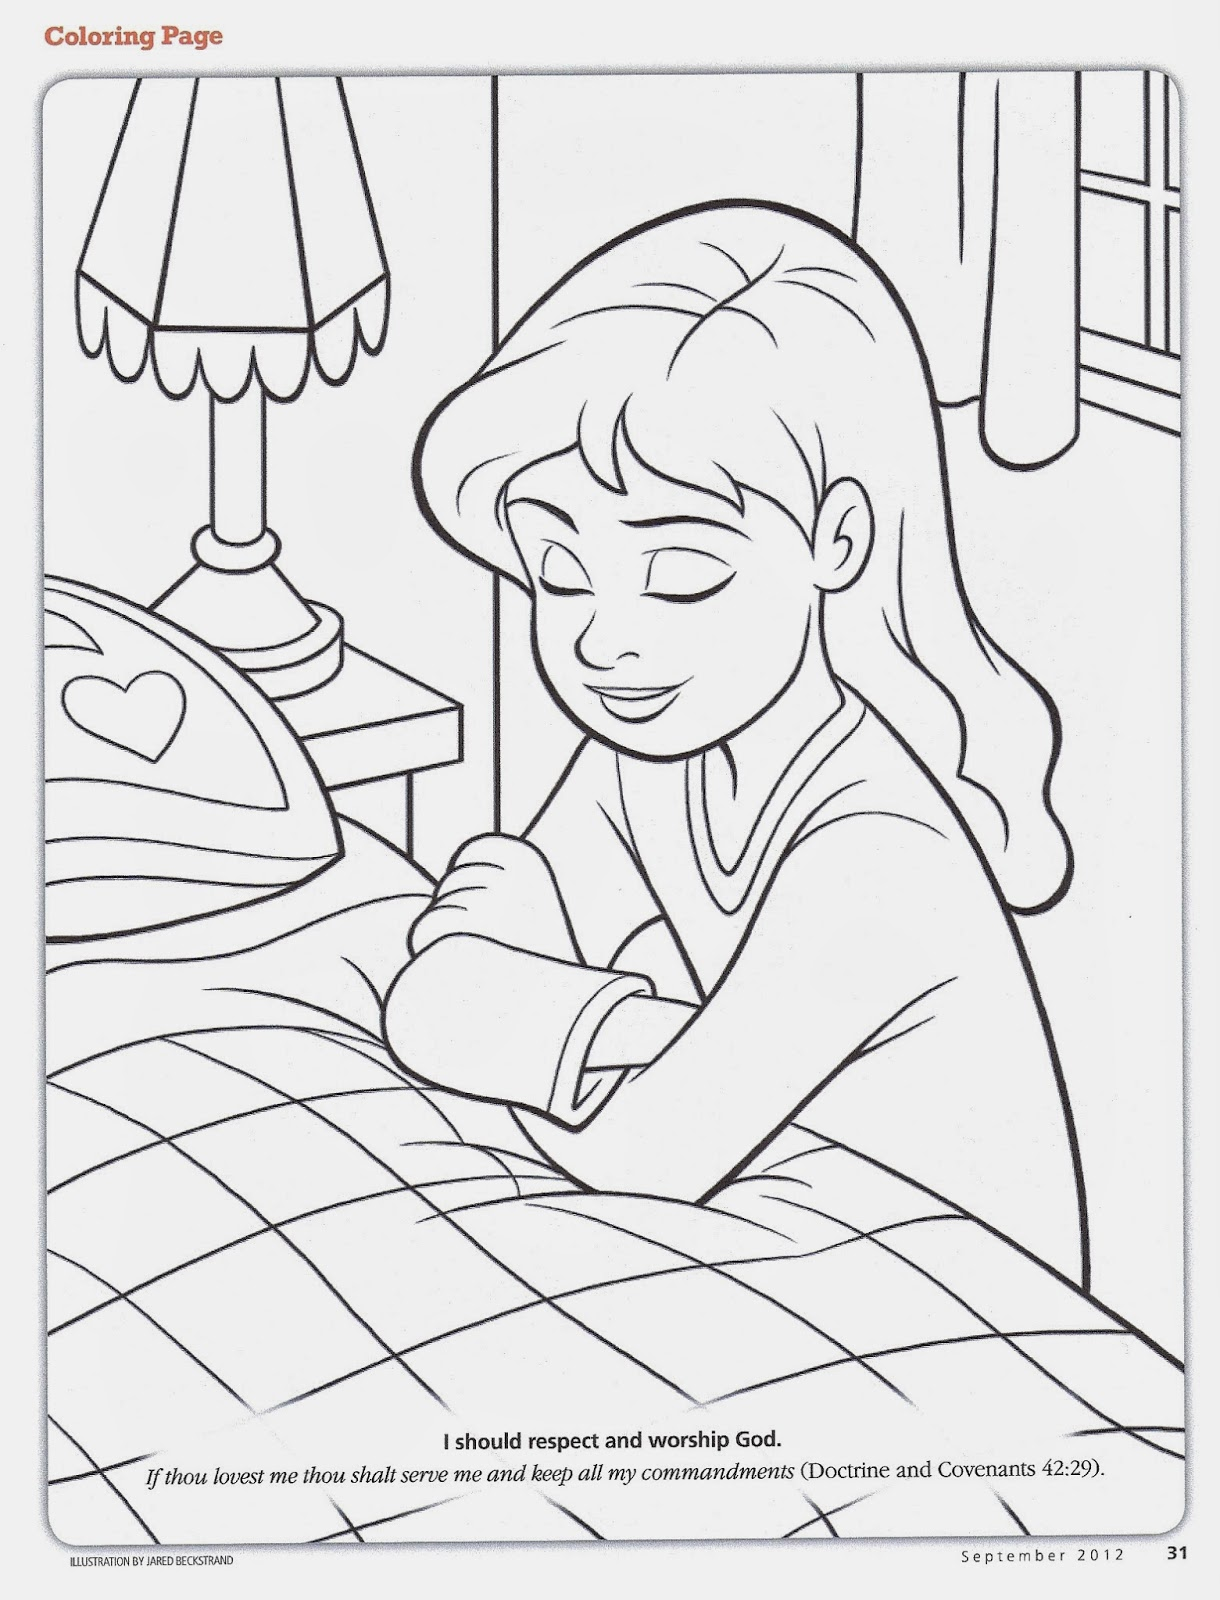 can coloring page - happy clean living primary 2 lesson 10